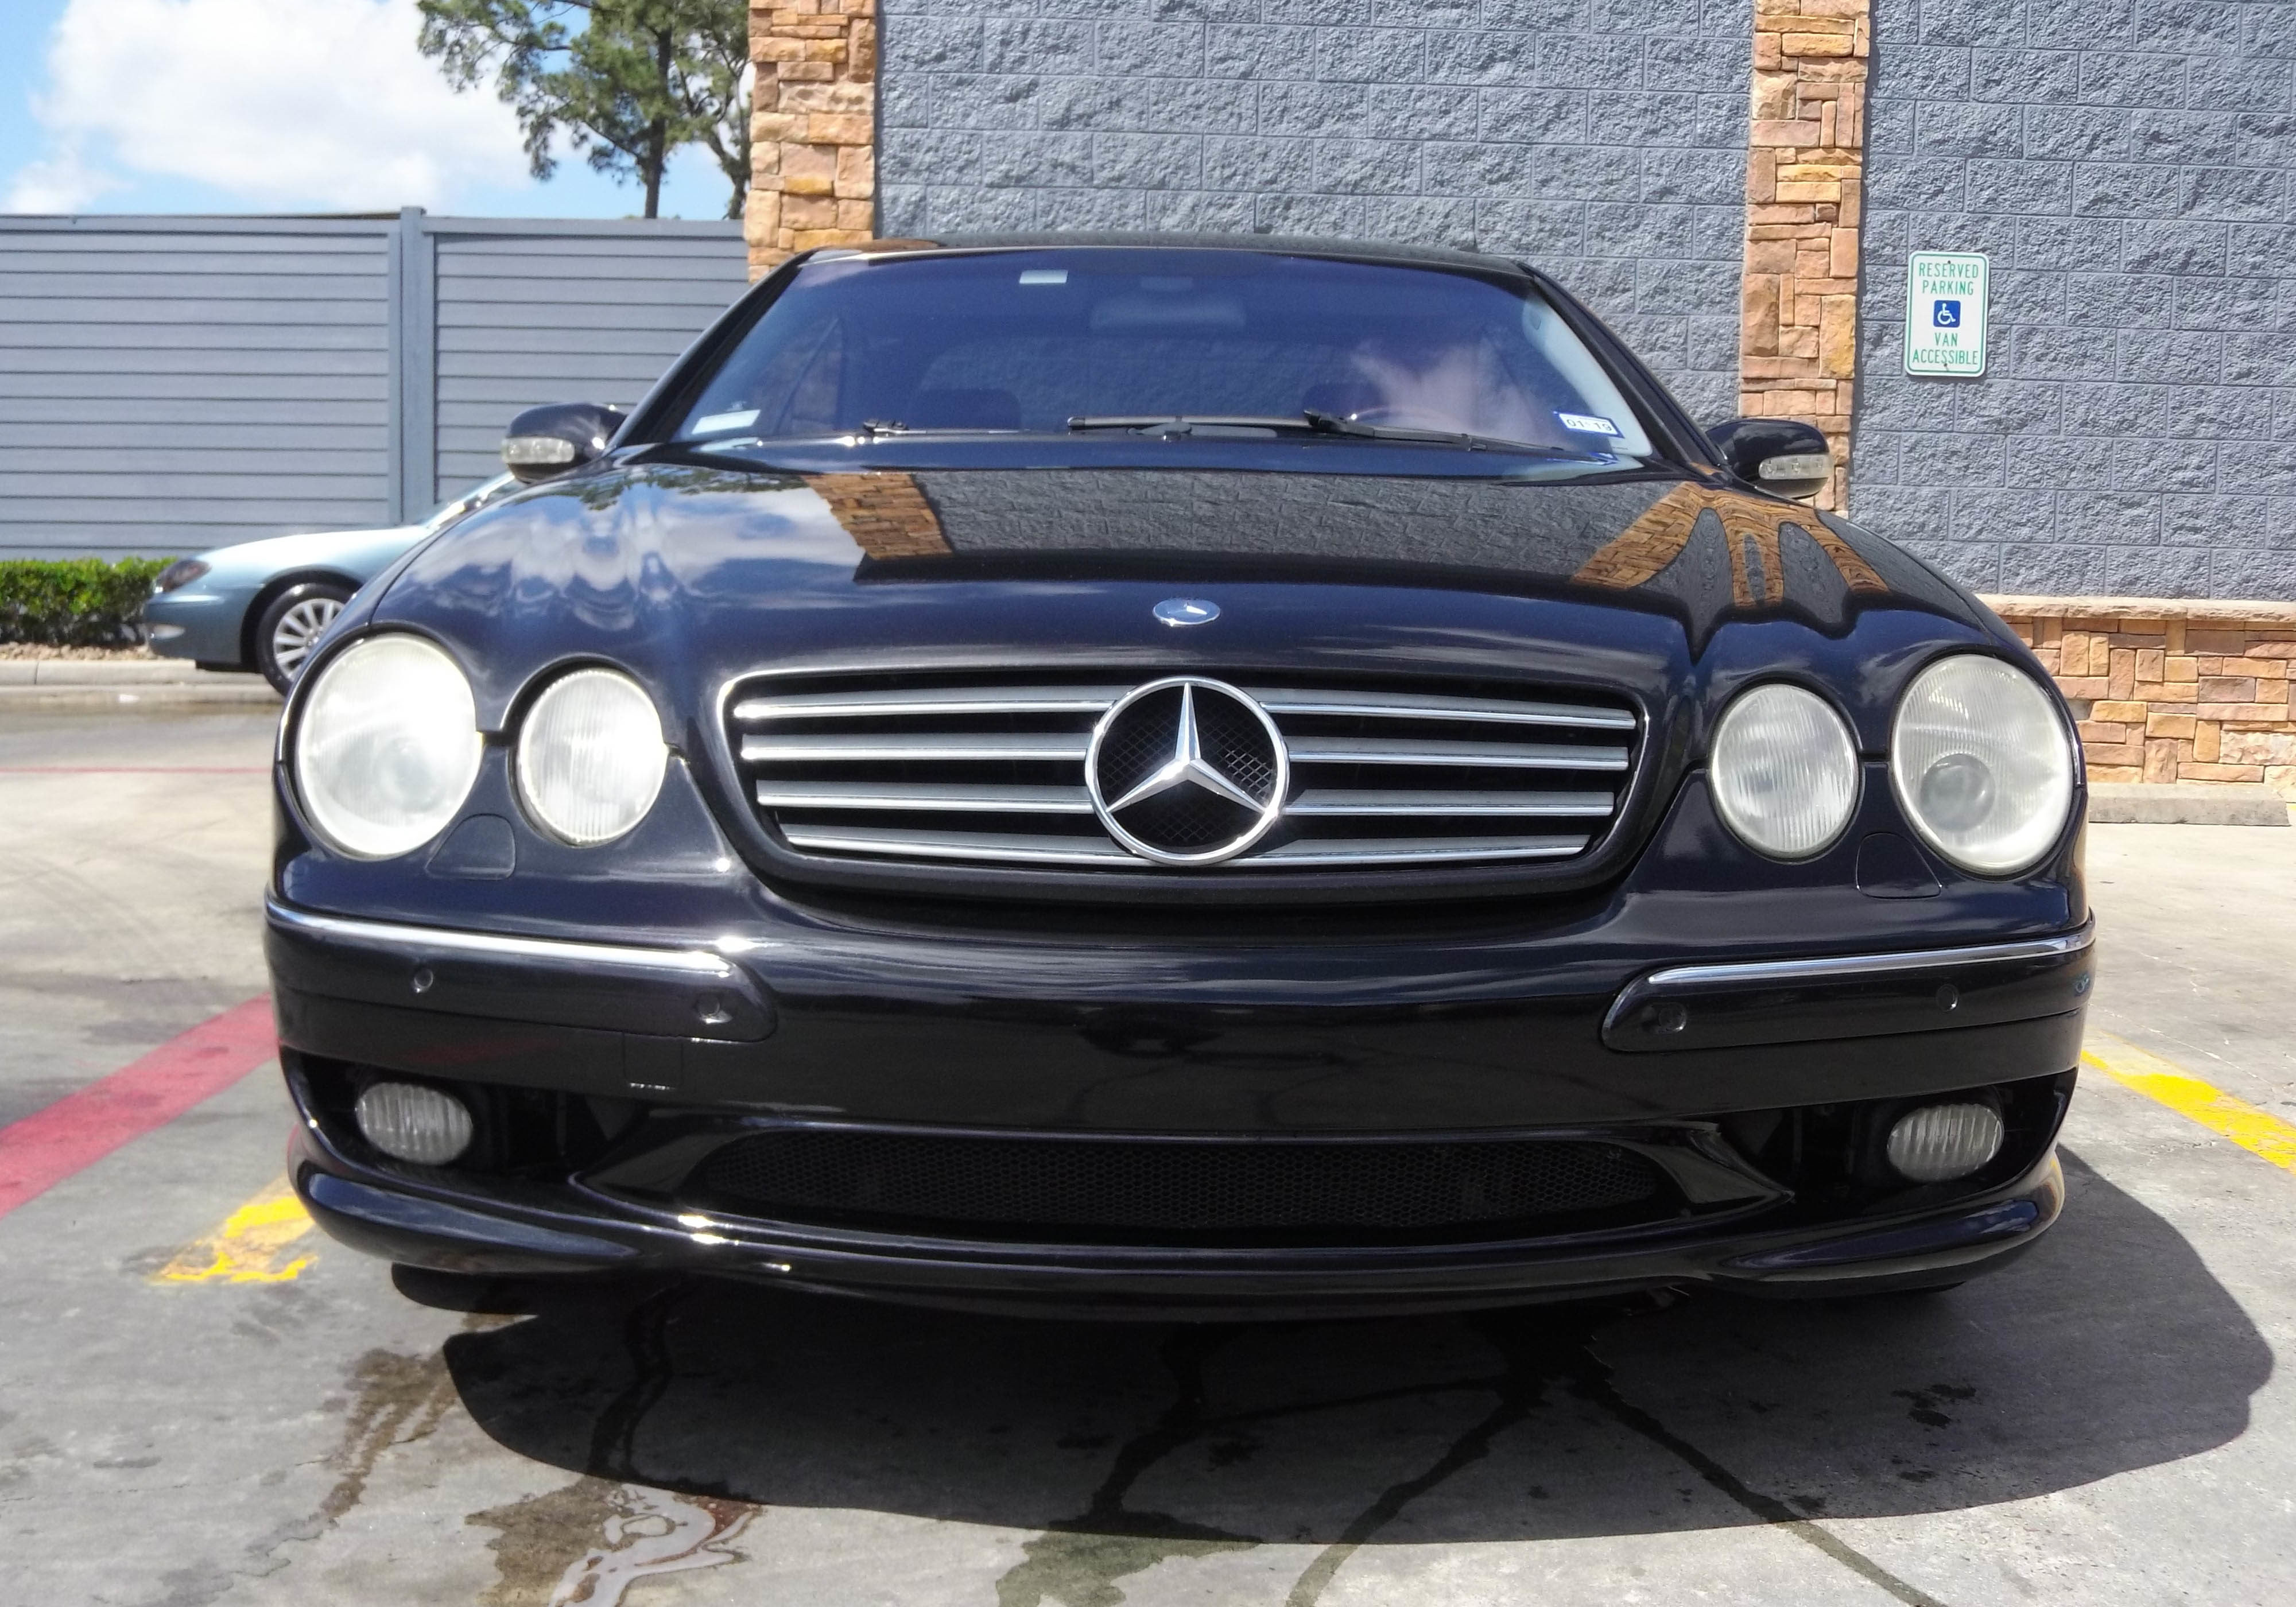 2001 Mercedes Benz CL55 AMG (Bumper Cover Repair)